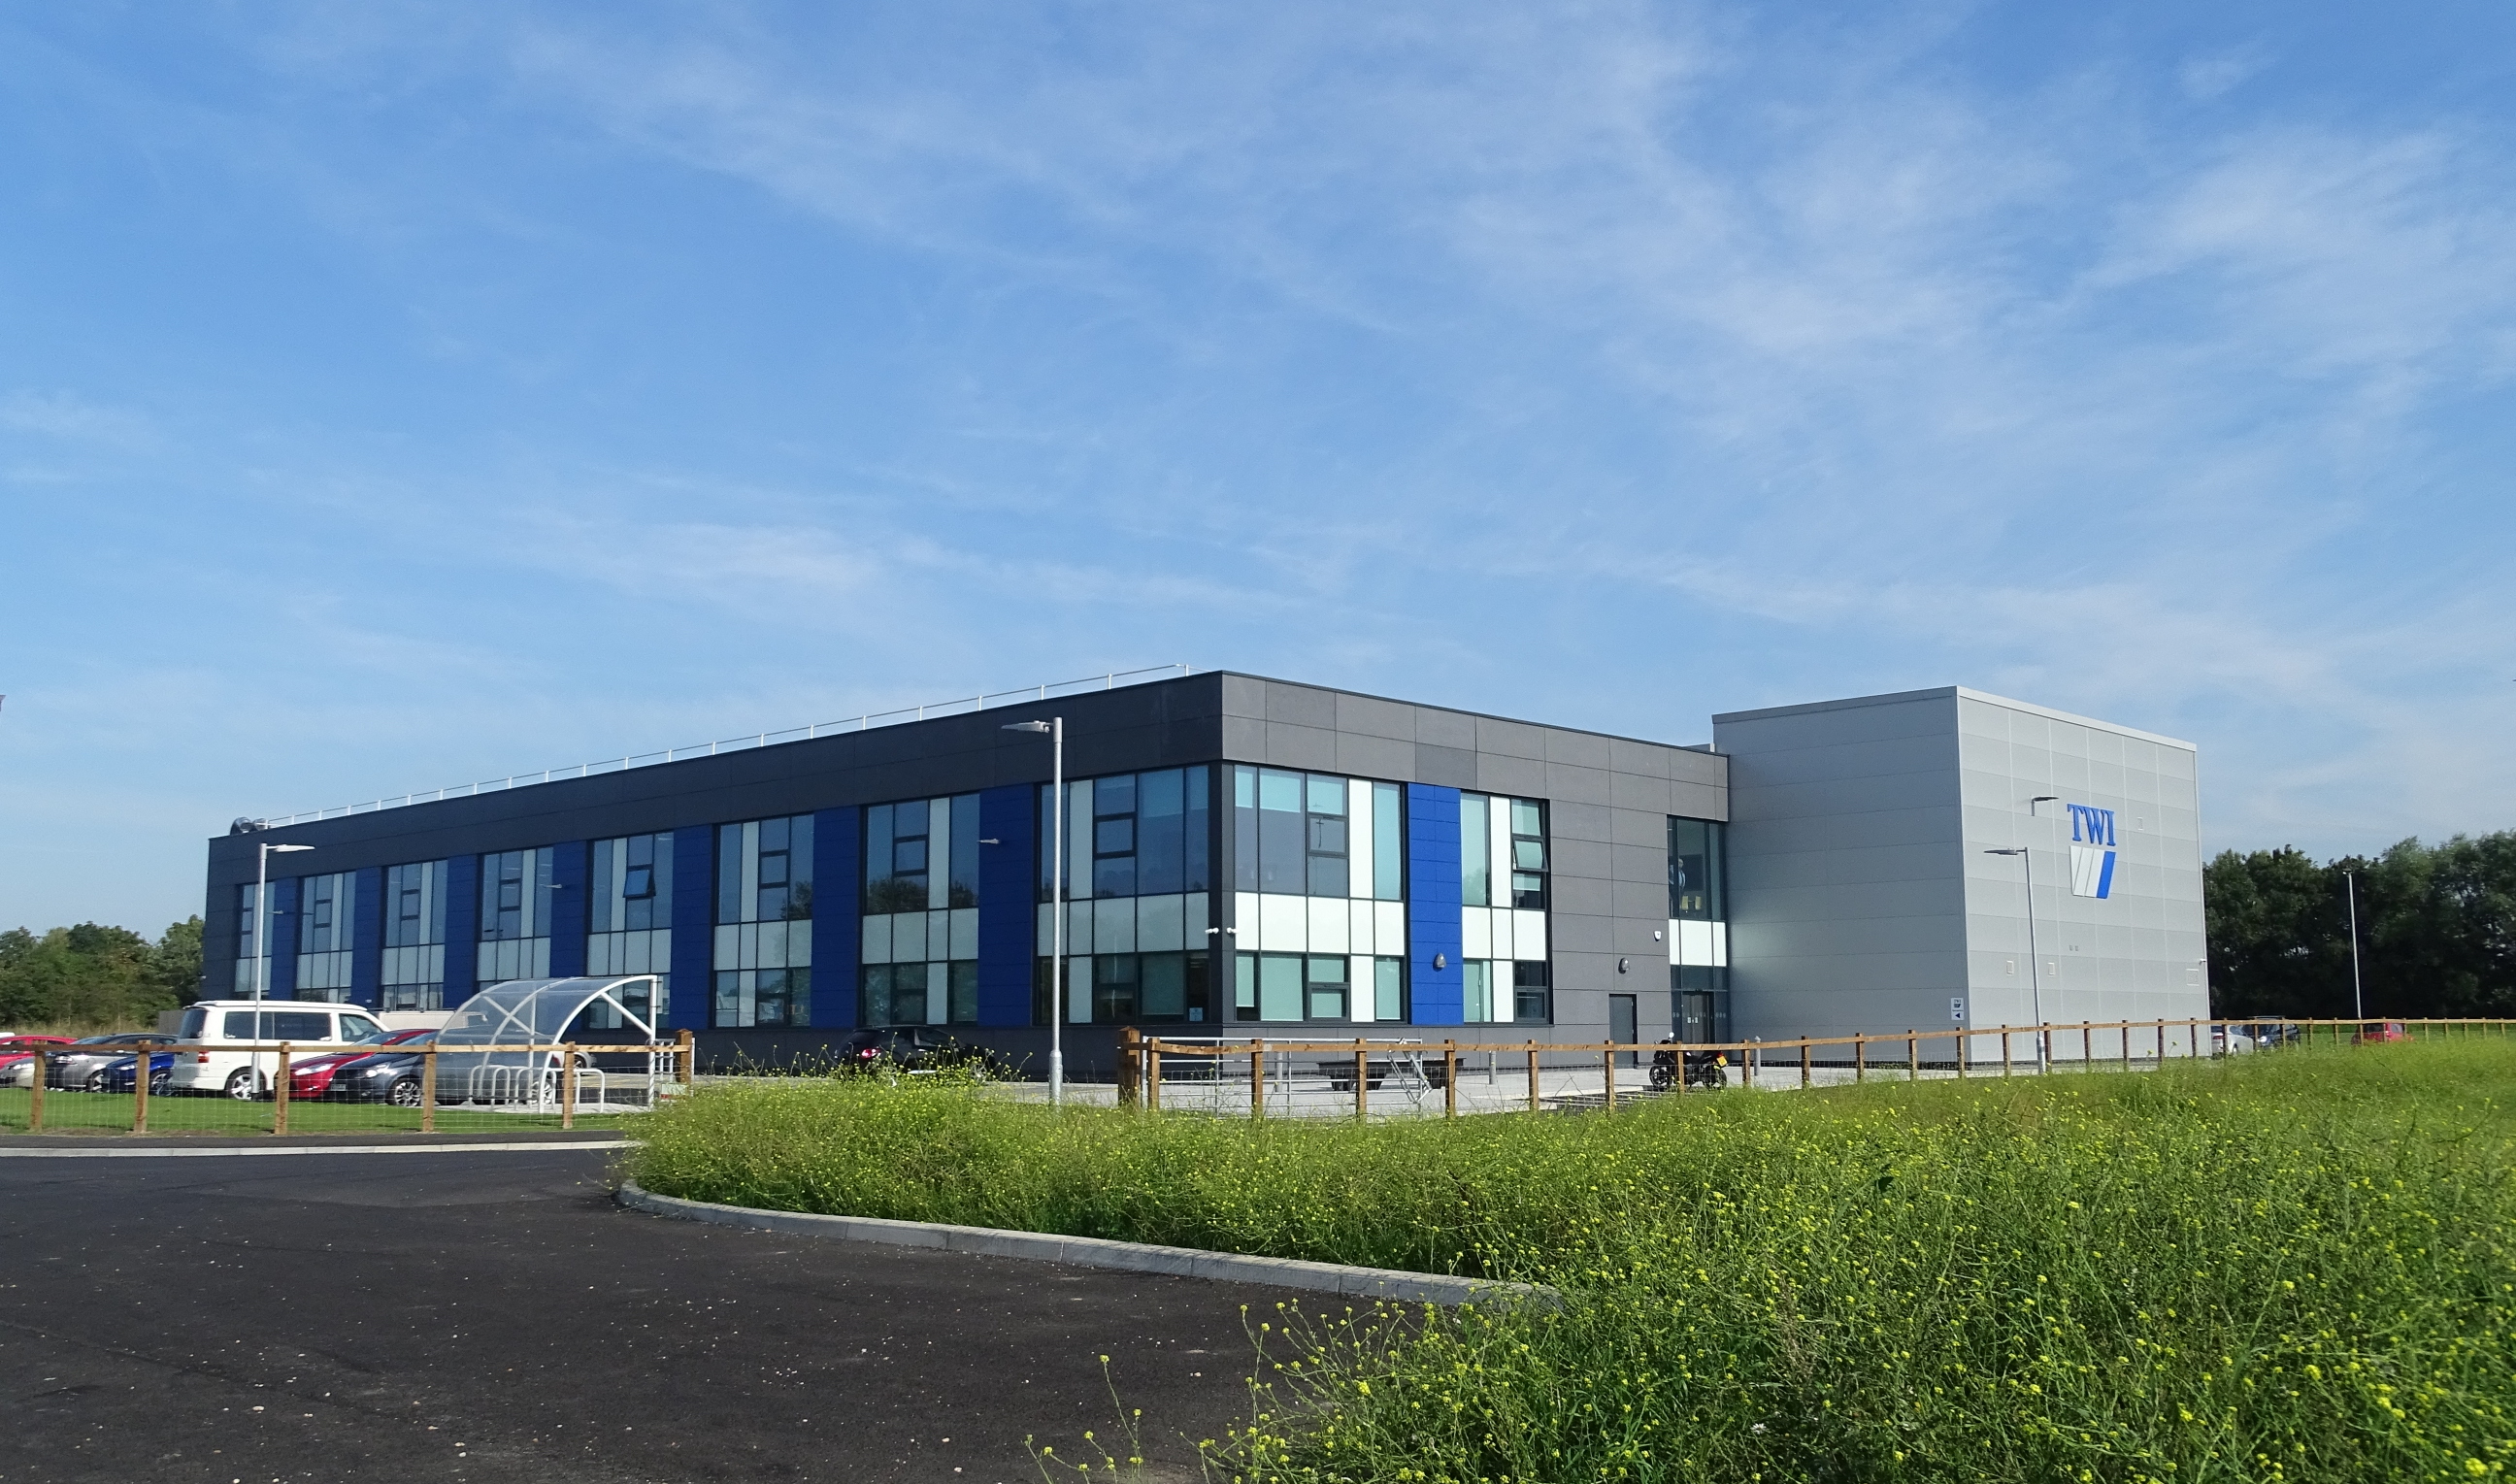 The new TWI Middlesbrough Technology and Training Centre